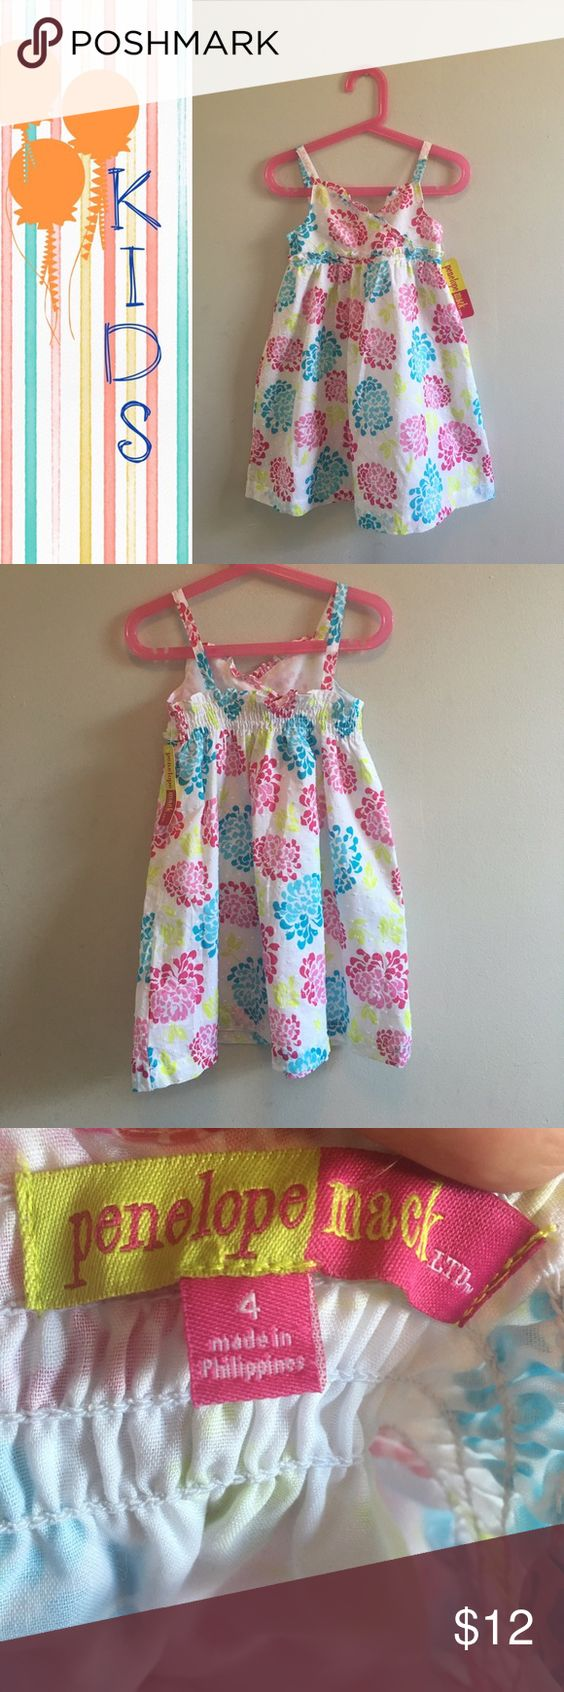 3x$18 Sale- Floral Dress for Toddler NWT floral dress size 4T. The dress has texture to it, cannot be seen well on the pictures but has tiny white pompoms all over which gives it texture. Brand new condition. Very cute! All items in this closet UNDER $10 are 3 x$18 with a custom listing. Just ask 😊 Penelope Mack Dresses